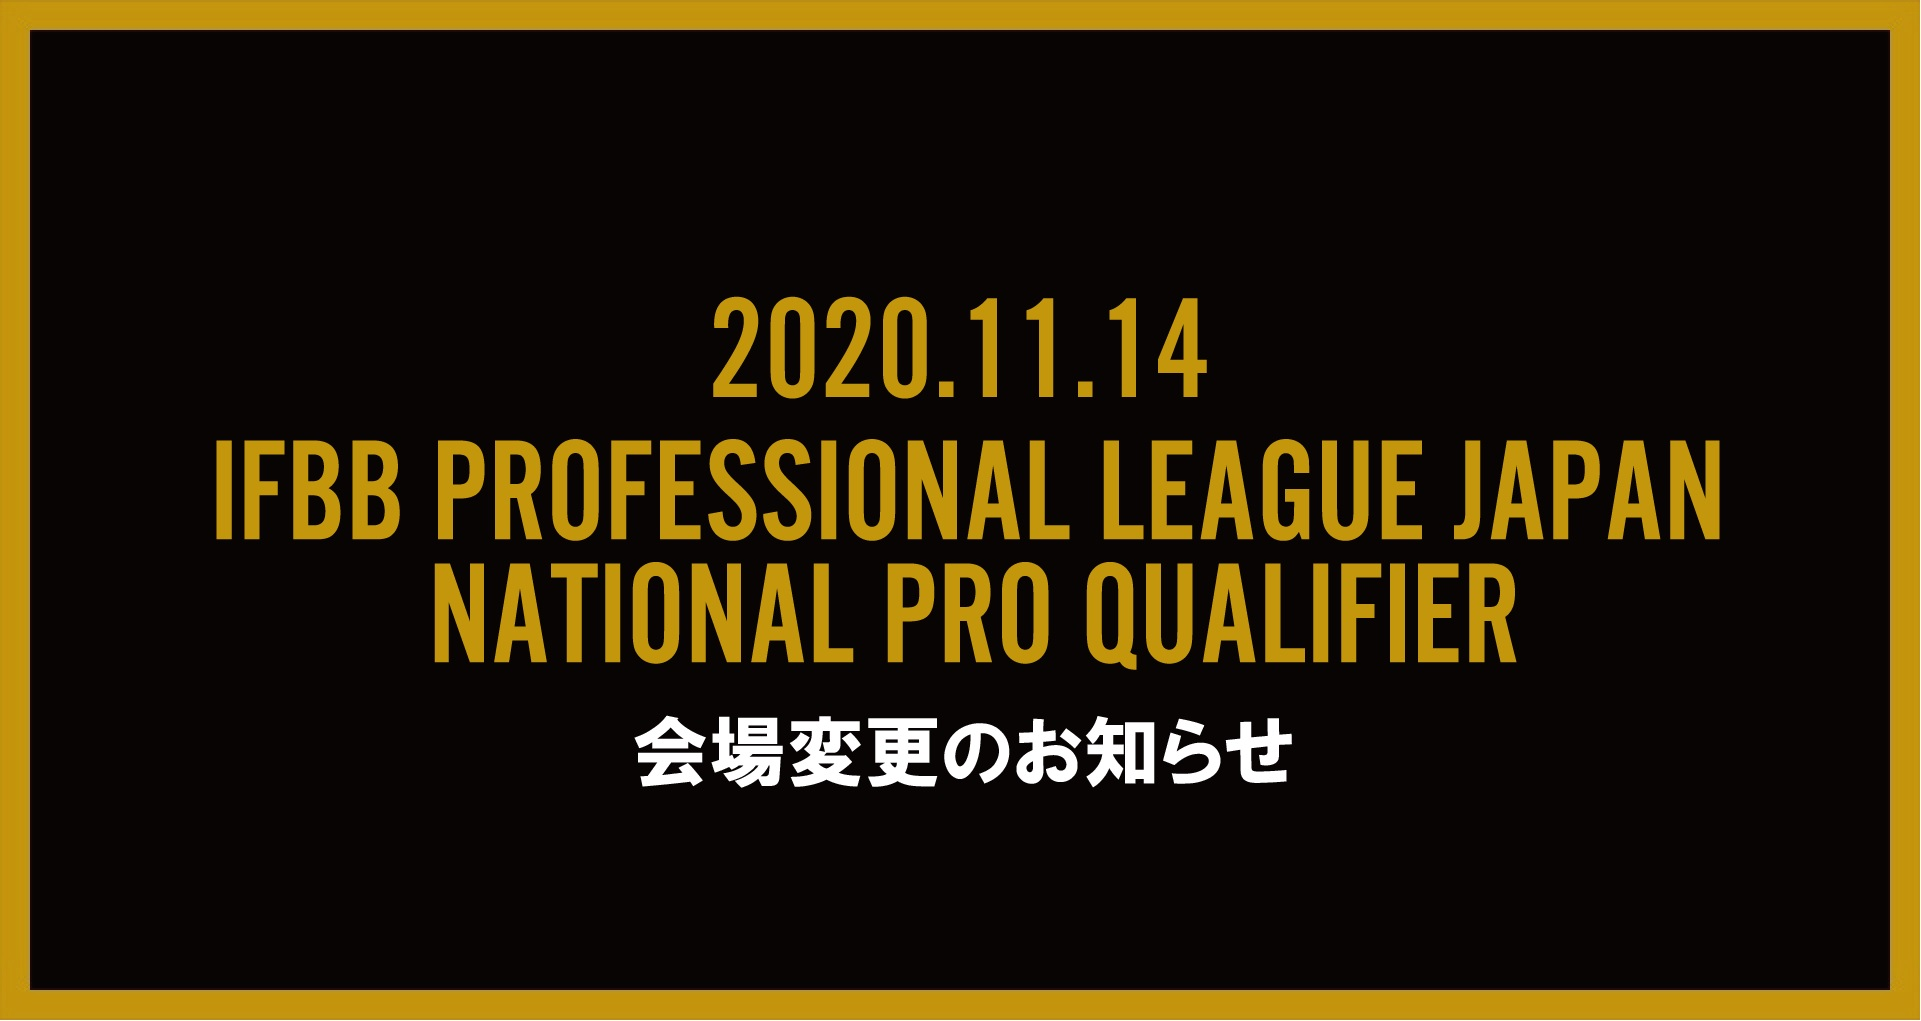 11月14日開催 IFBB PROFESSIONAL LEAGUE JAPAN NATIONAL PRO QUALIFIER 会場変更のお知らせ